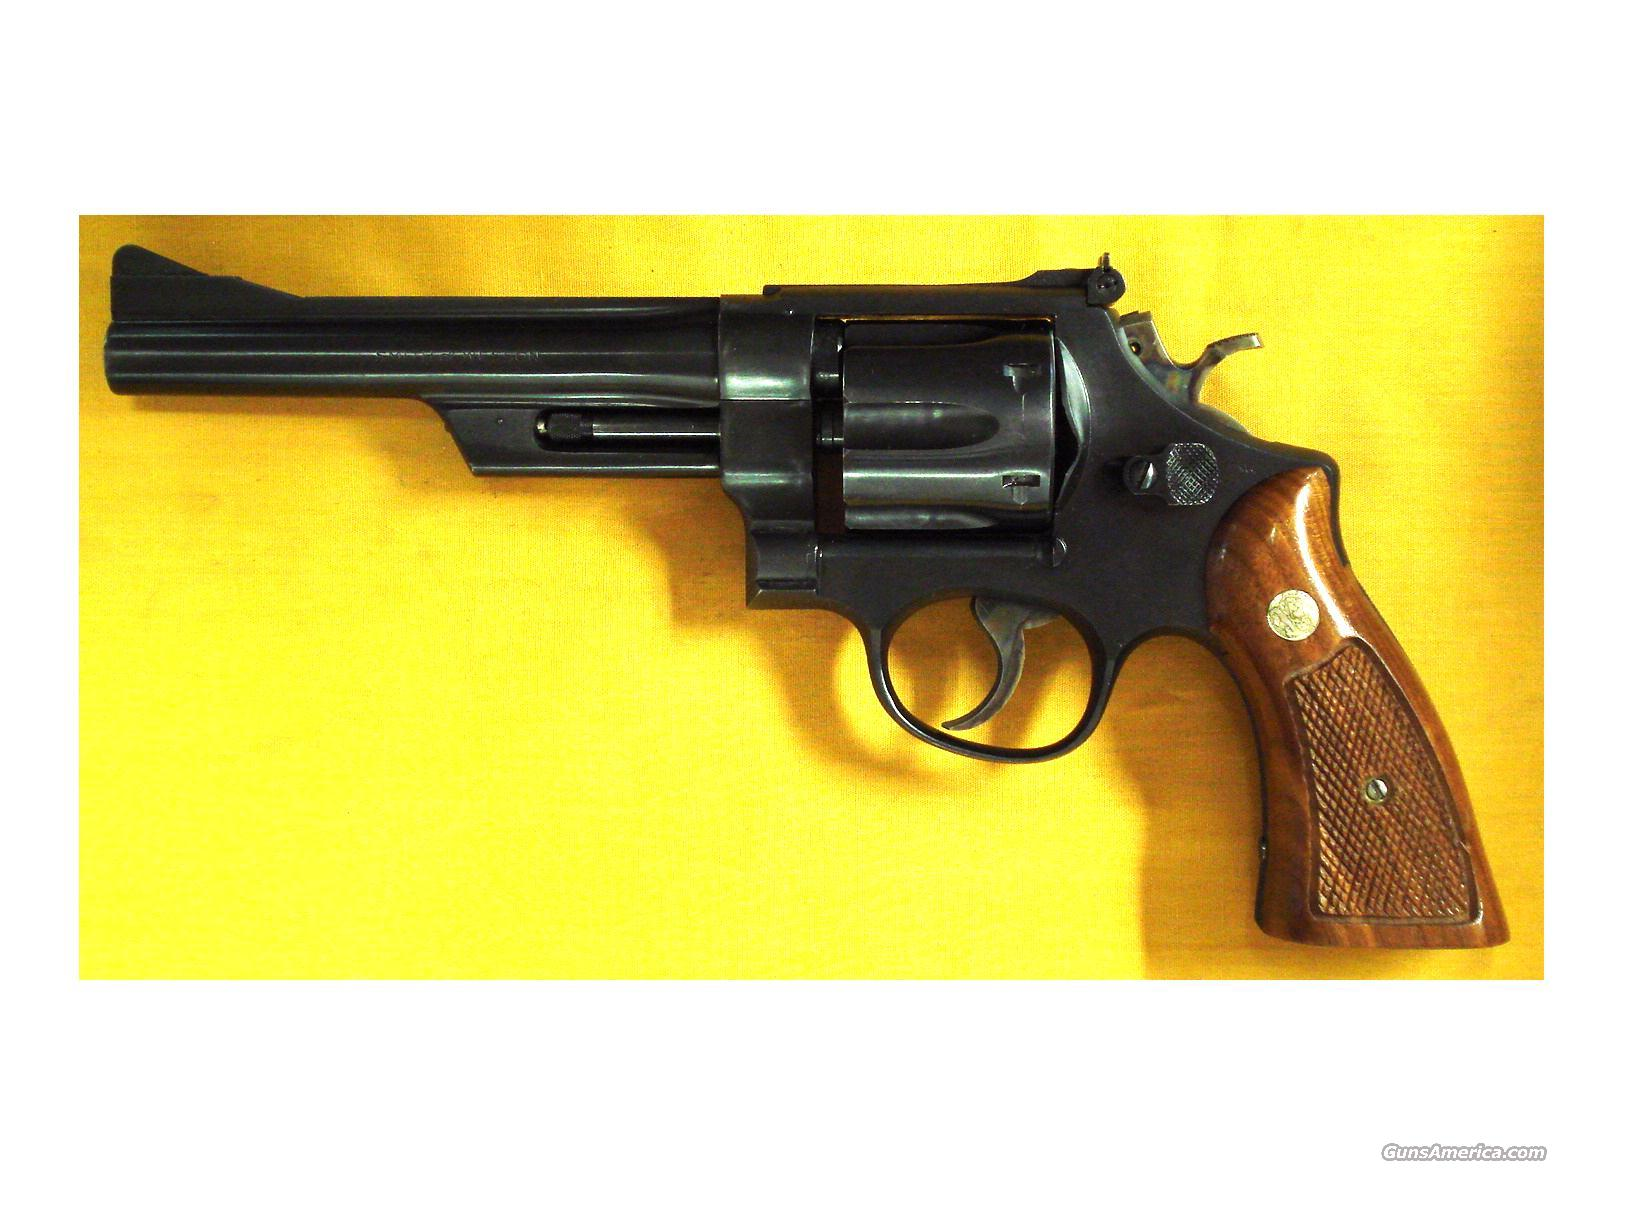 "S&W 28-2 HIGHWAY PATROLMAN .357 6""BBL  Guns > Pistols > Smith & Wesson Revolvers > Full Frame Revolver"